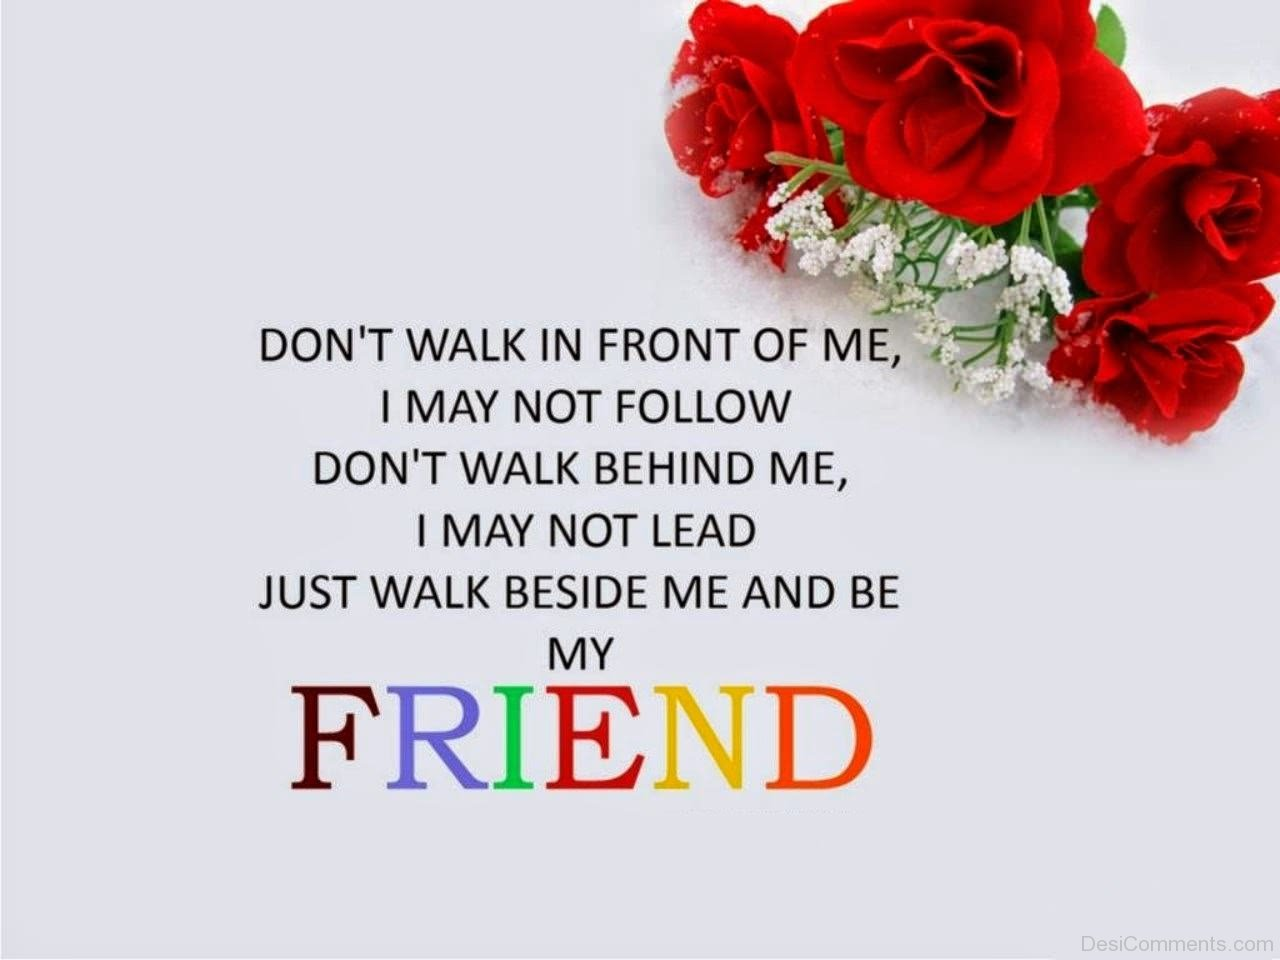 Islamic Quotes About Friendship Friendship Quotes Pictures Images Graphics For Facebook Whatsapp